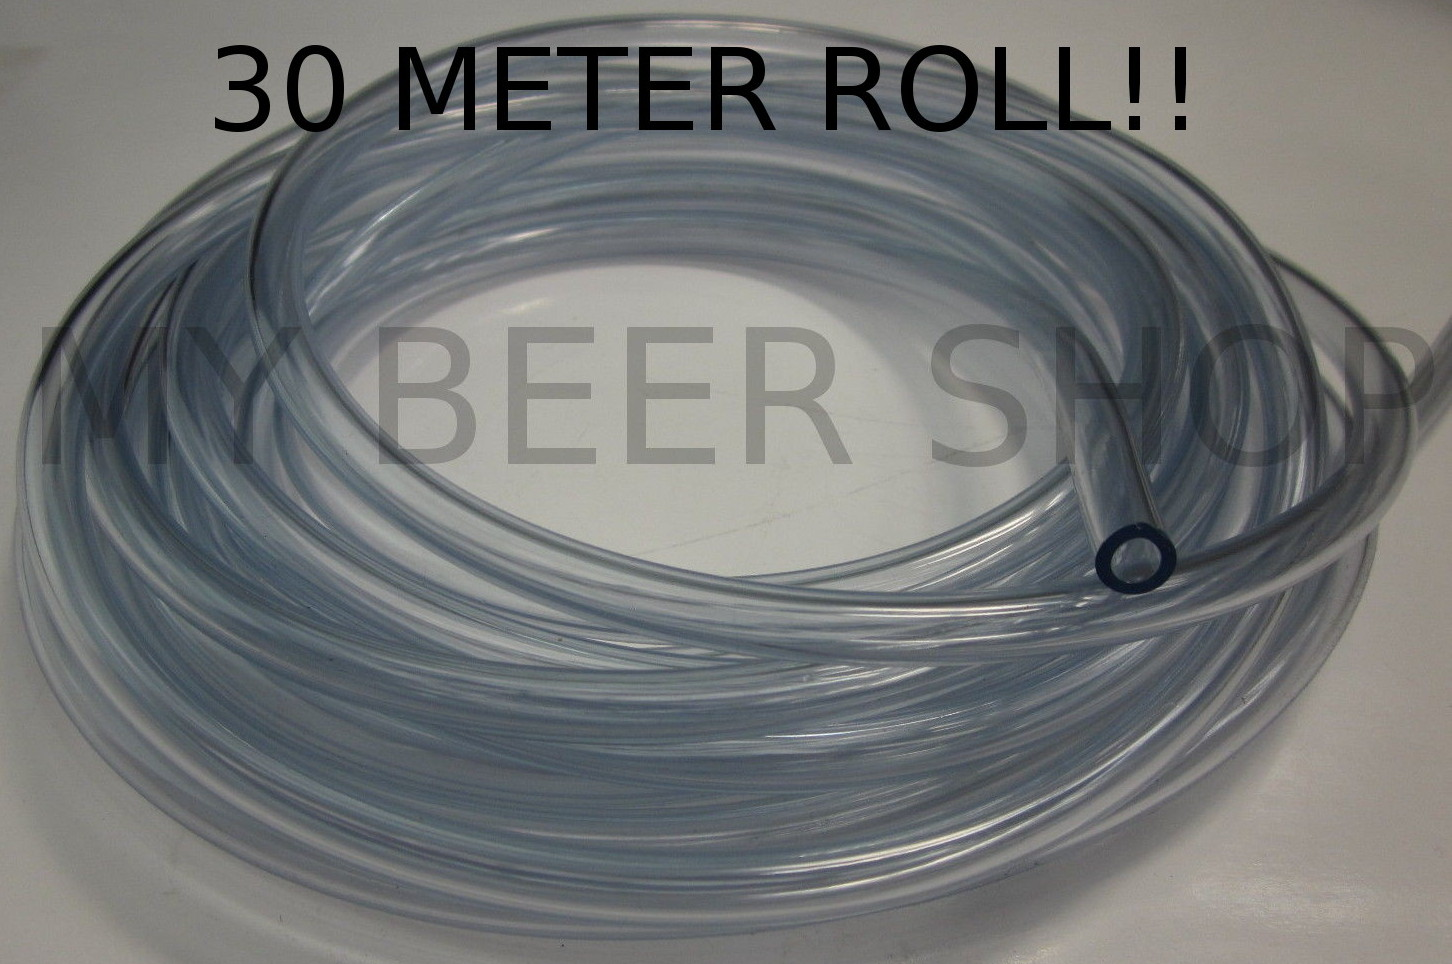 30M!! 6mm ID 9mm OD FOOD GRADE CLEAR FLEX VINYL TUBE HOSE HOSING